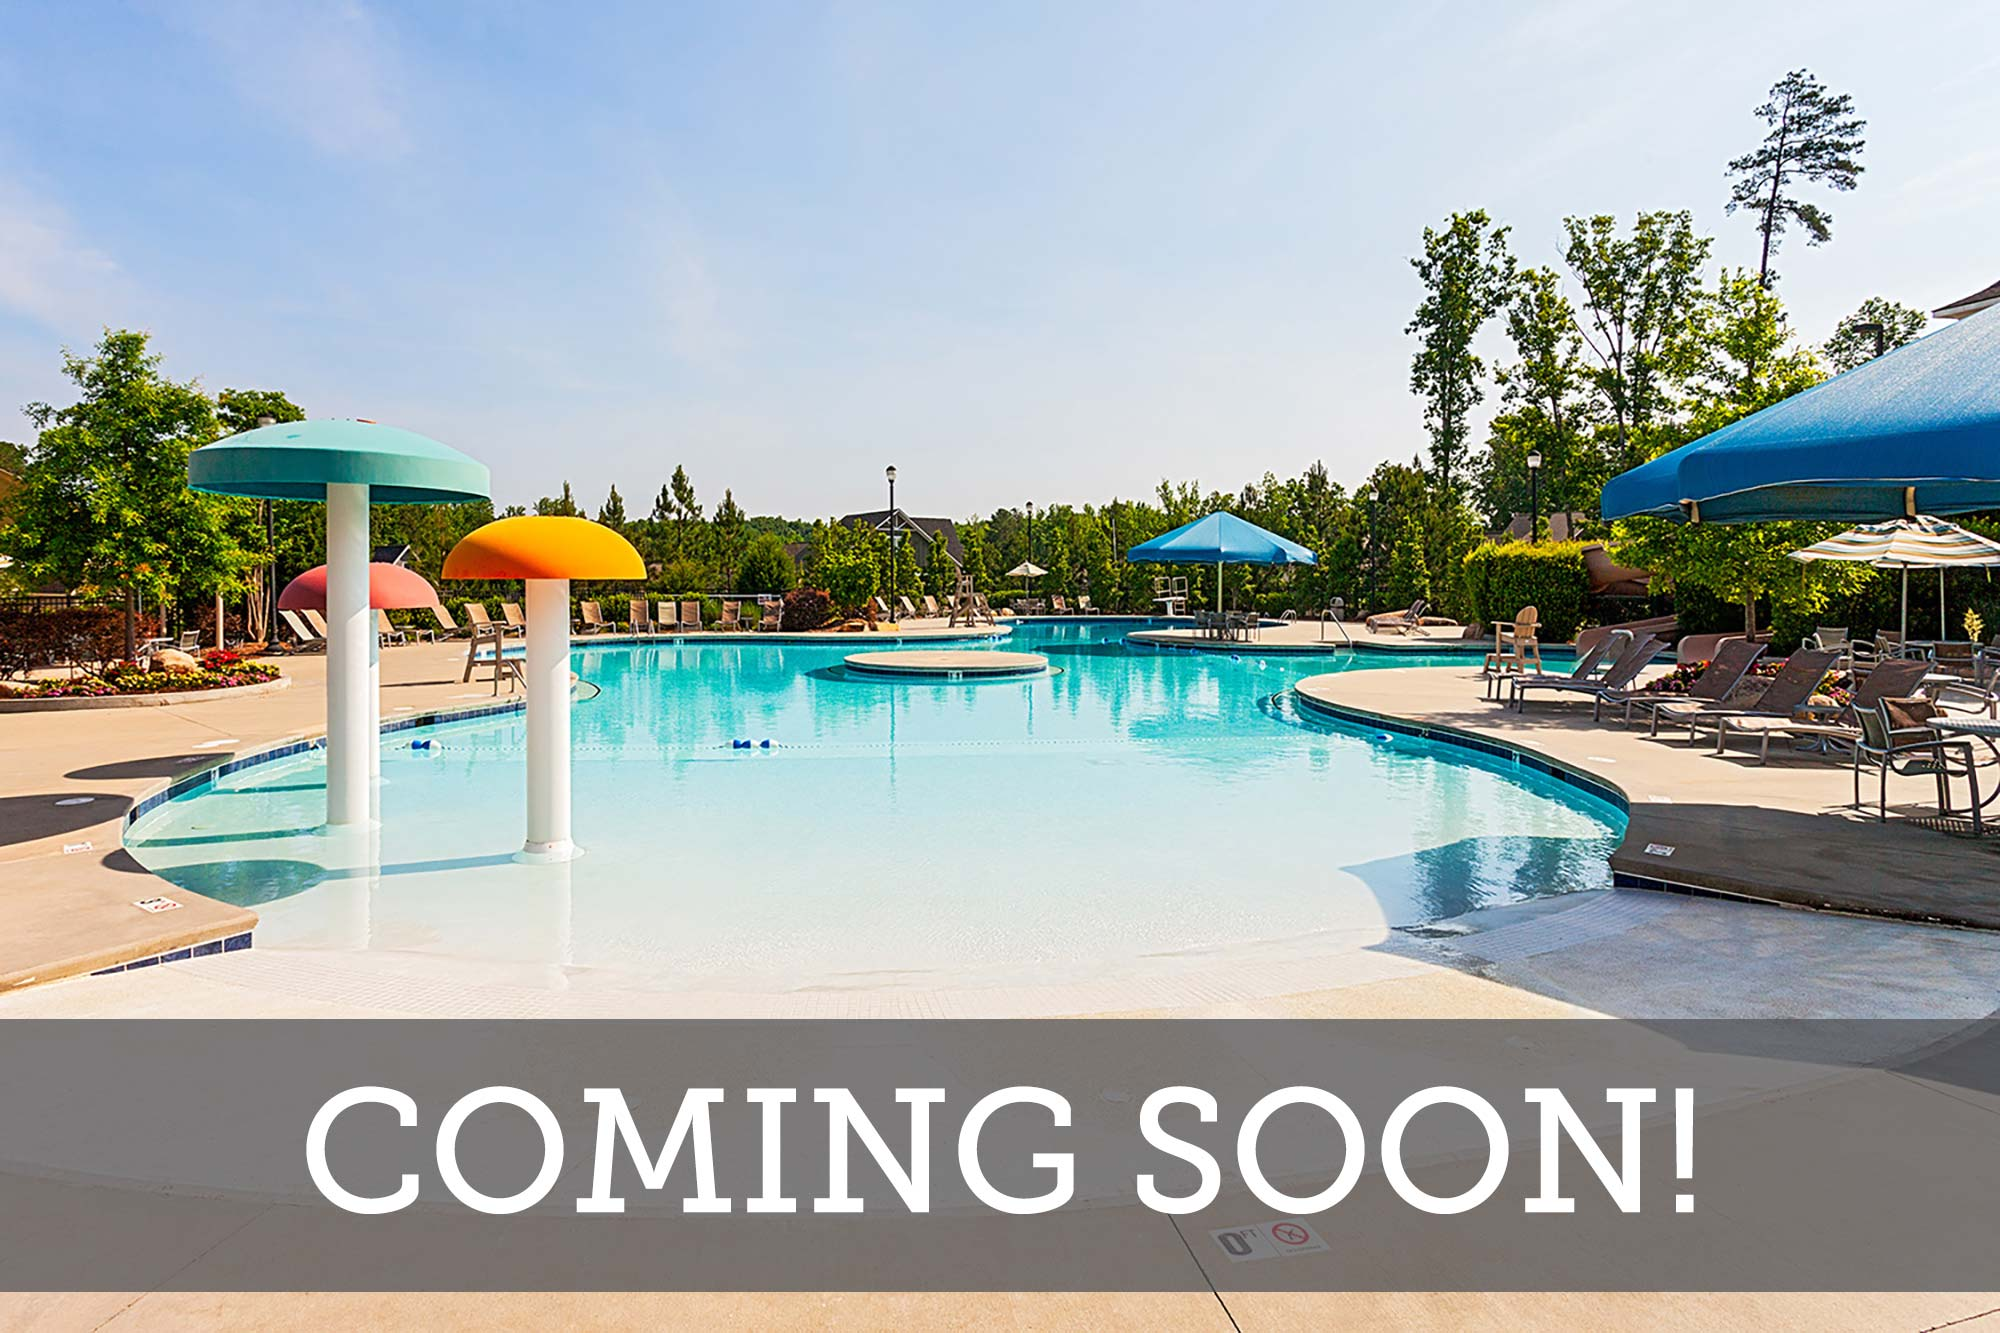 Briar Chapel Townhomes - Coming Soon